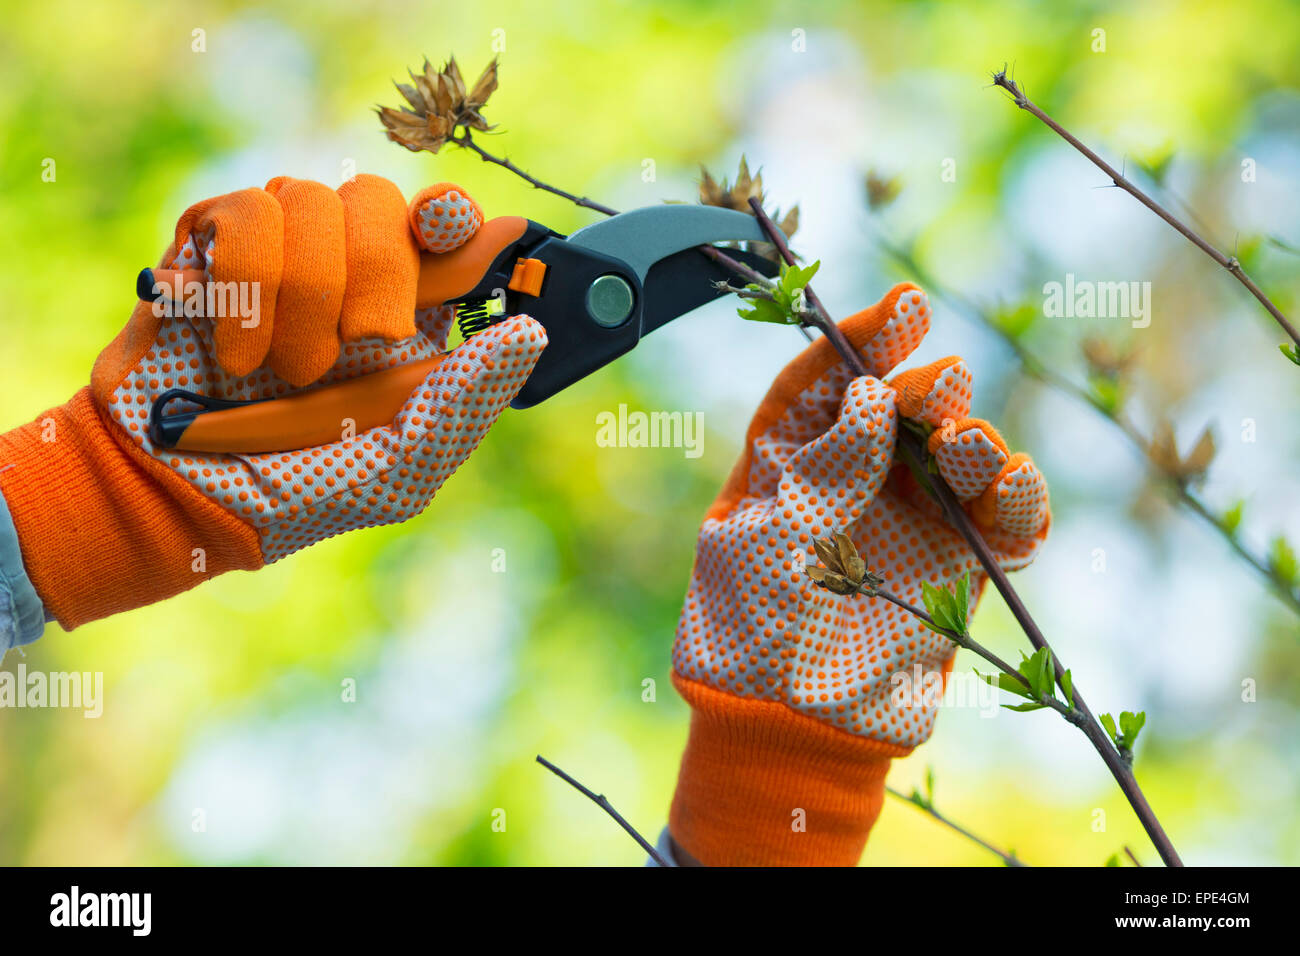 Gardening, Pruning Hibiscus Plant, Gloves and Shears - Stock Image